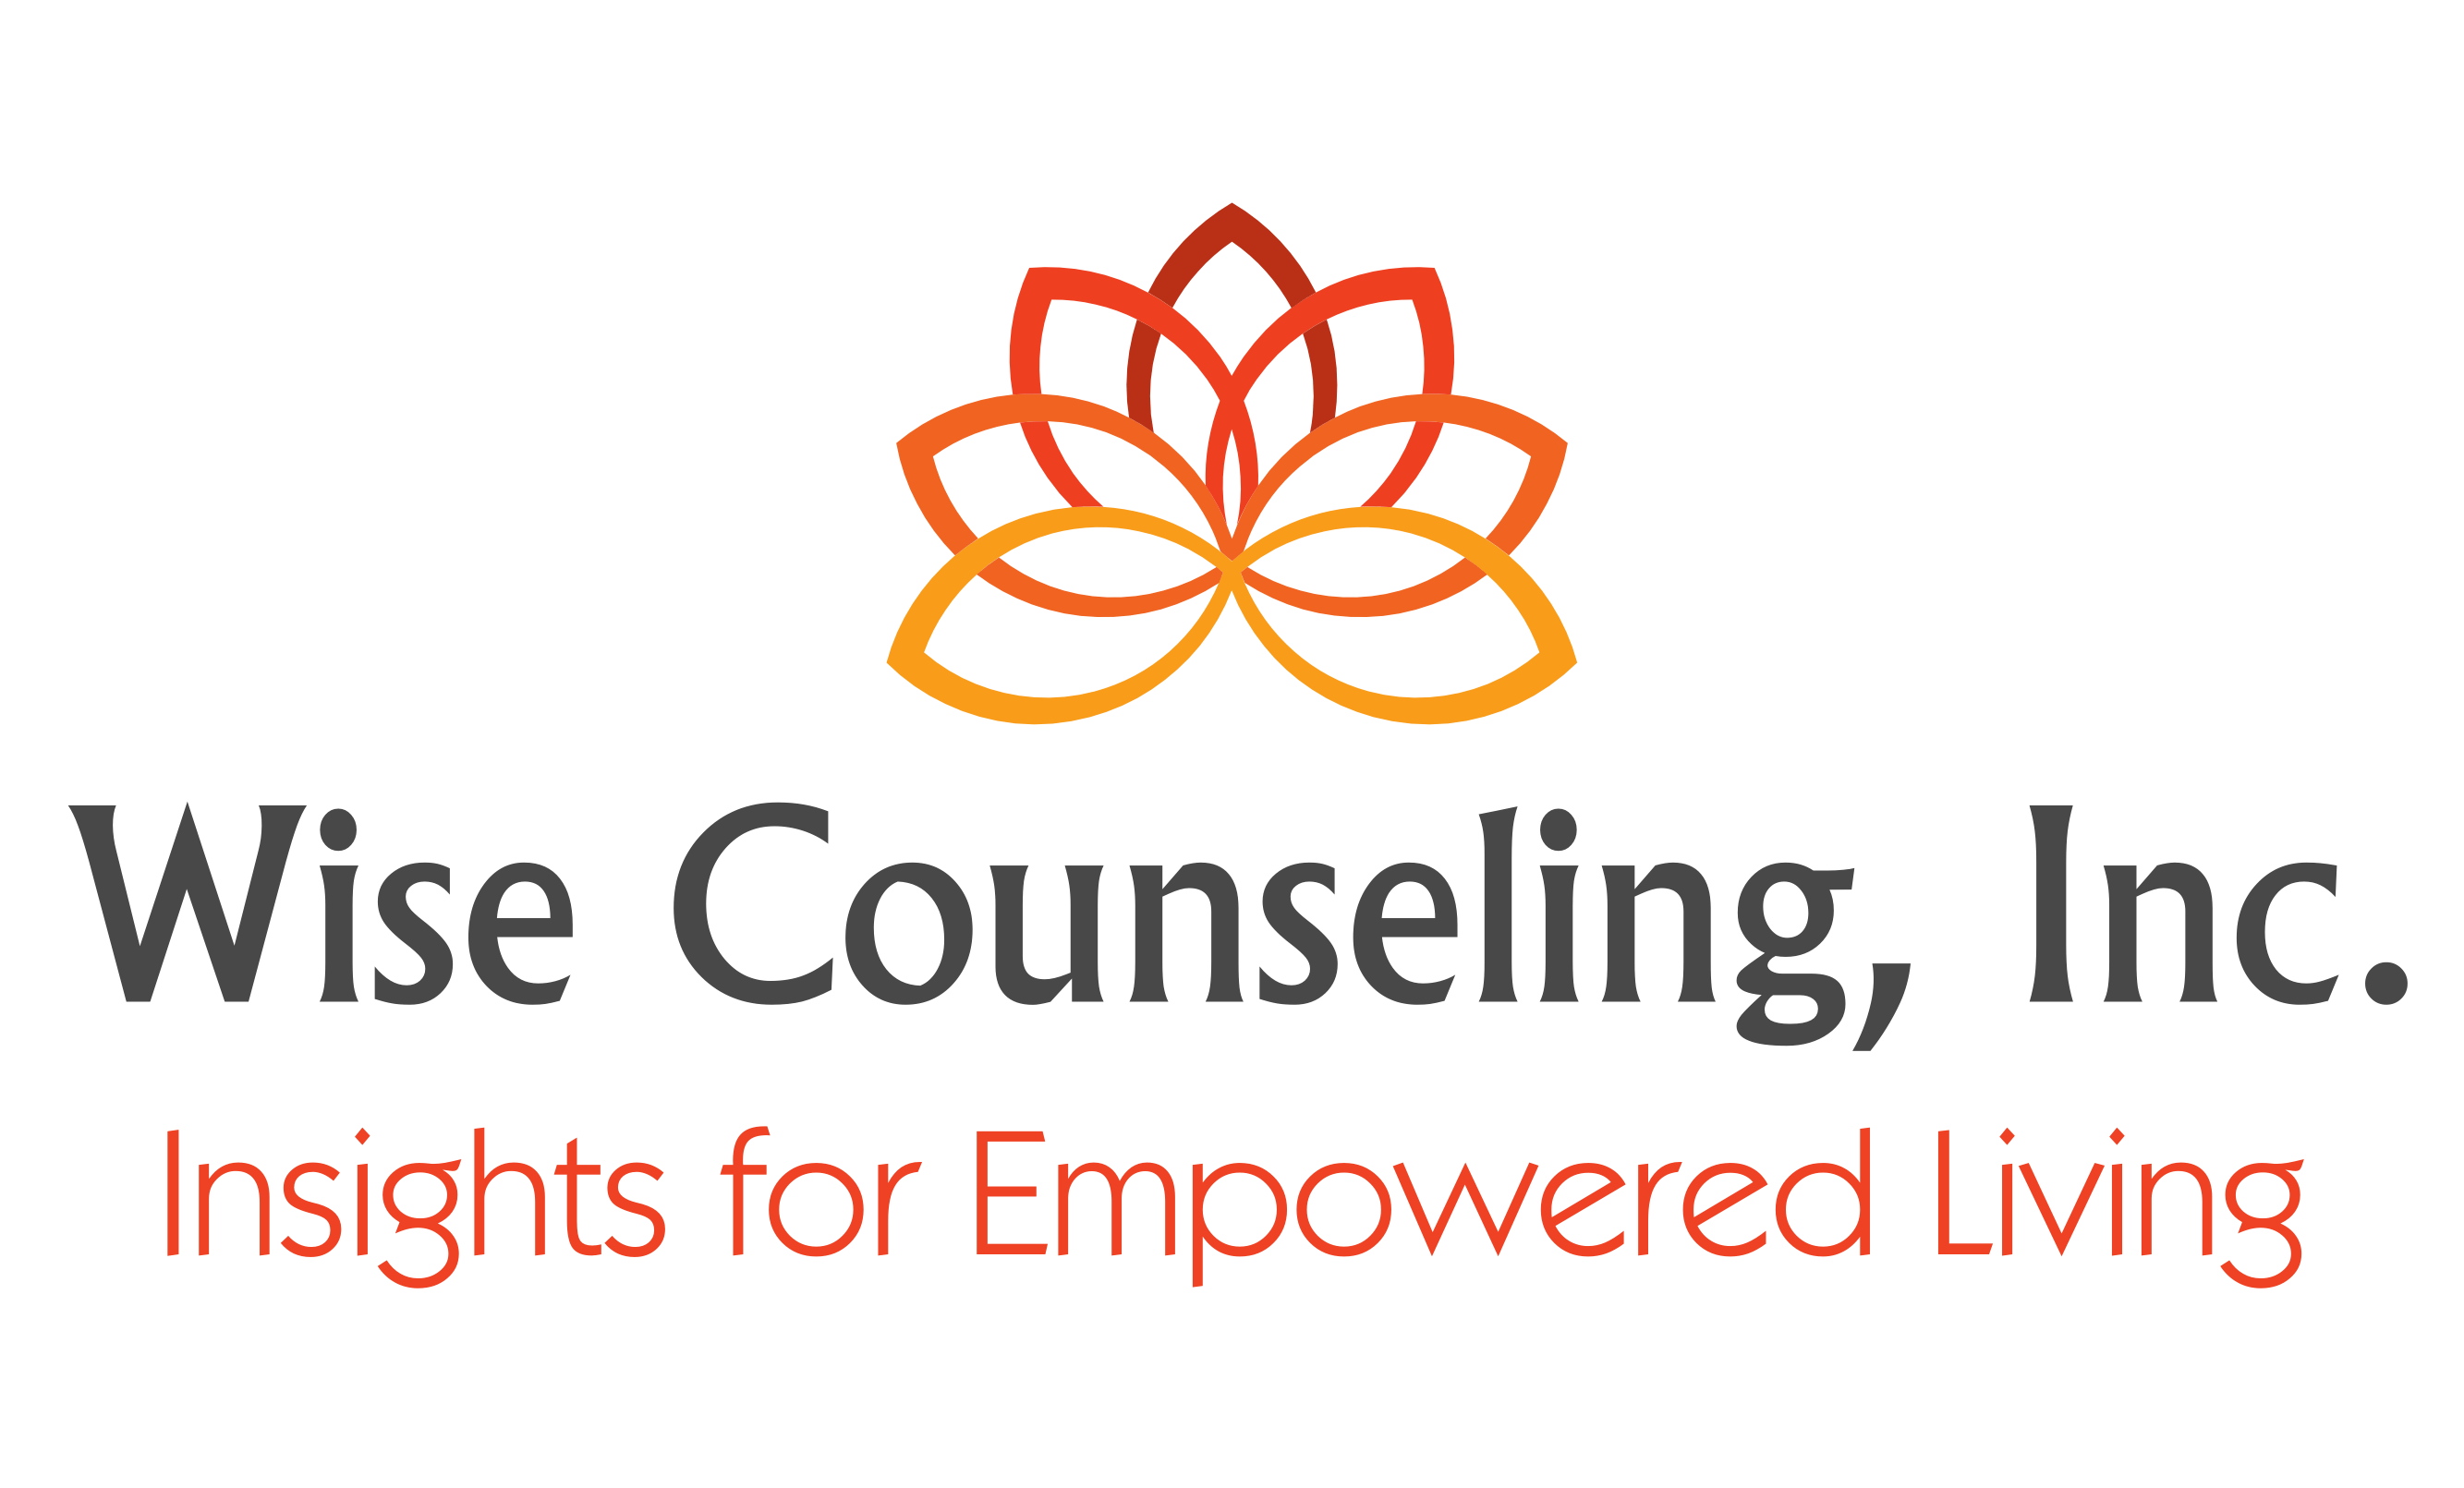 Wise Counseling, Inc.